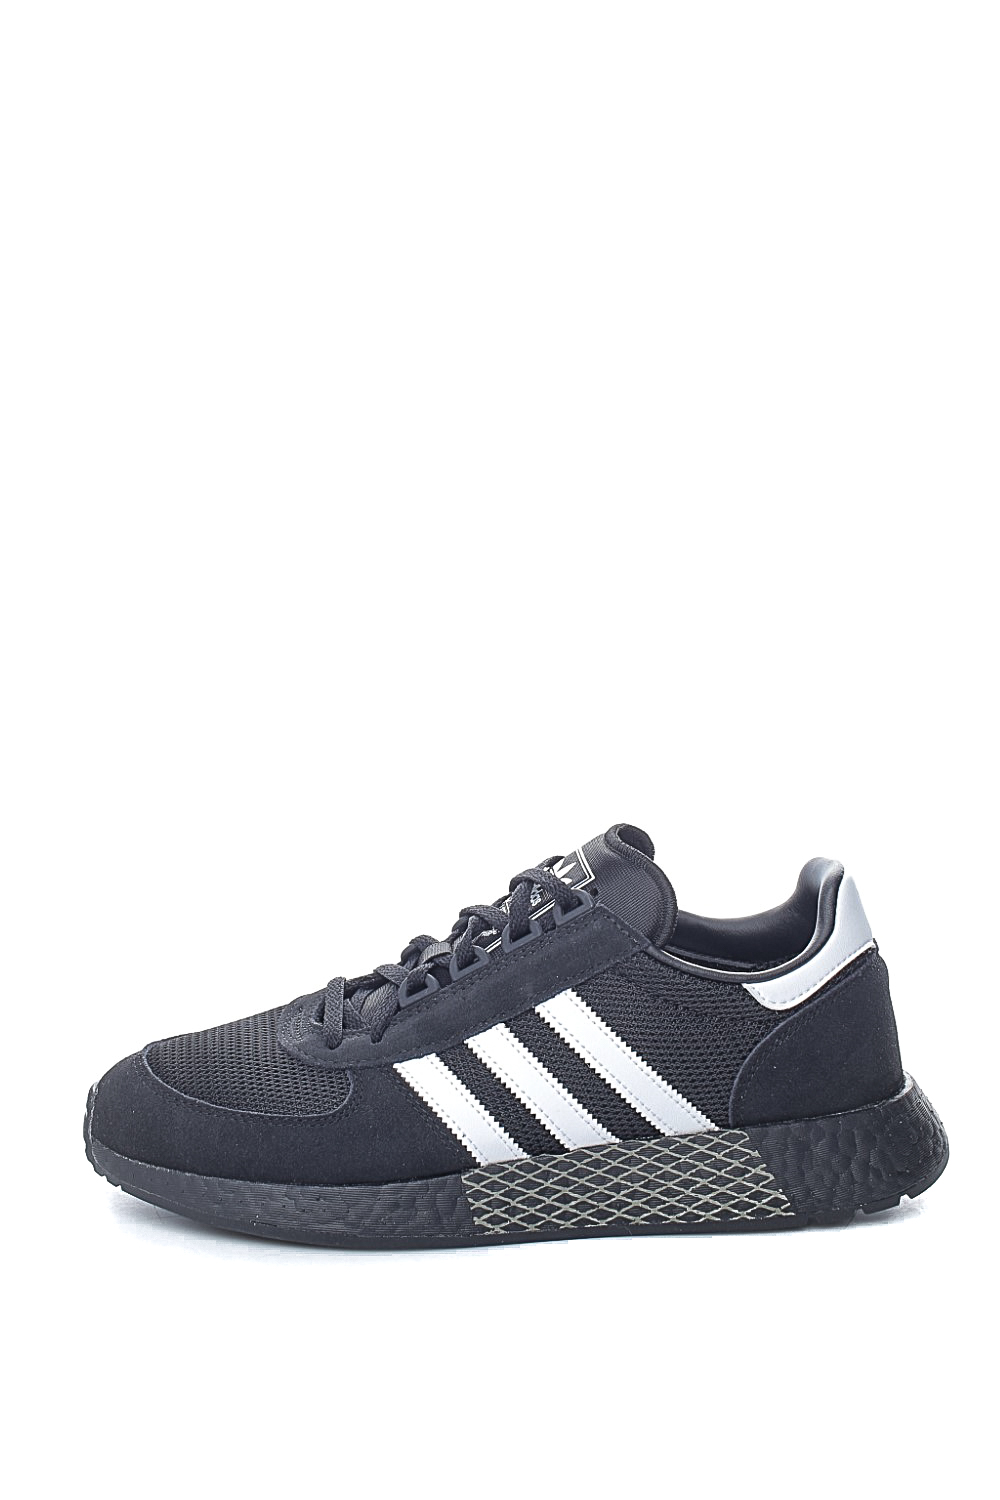 adidas Originals - Unisex παπούτσια running adidas Originals MARATHON TECH adidas Originals μαύρα